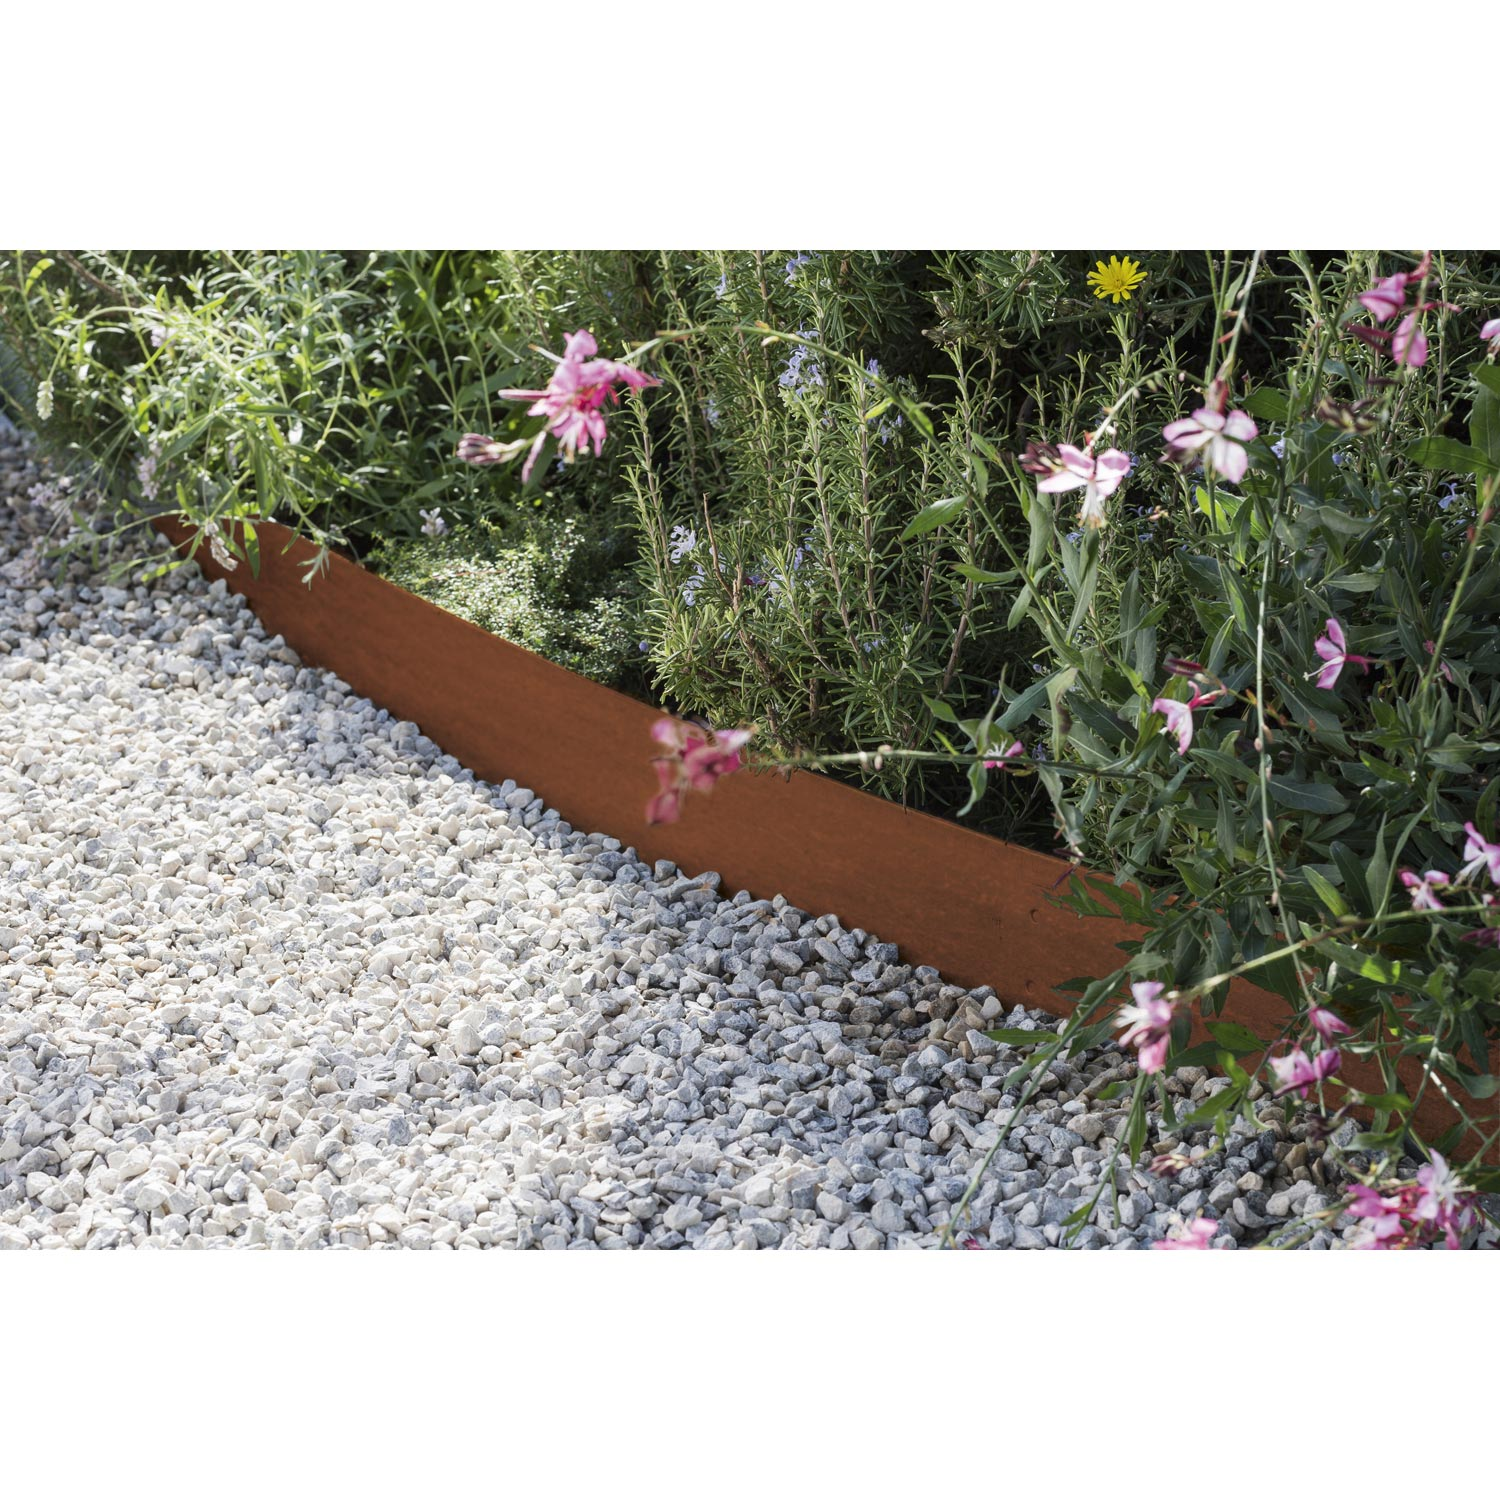 Bordure planter aspect rouille acier galvanis gris h for Plantes pour bordures de jardin